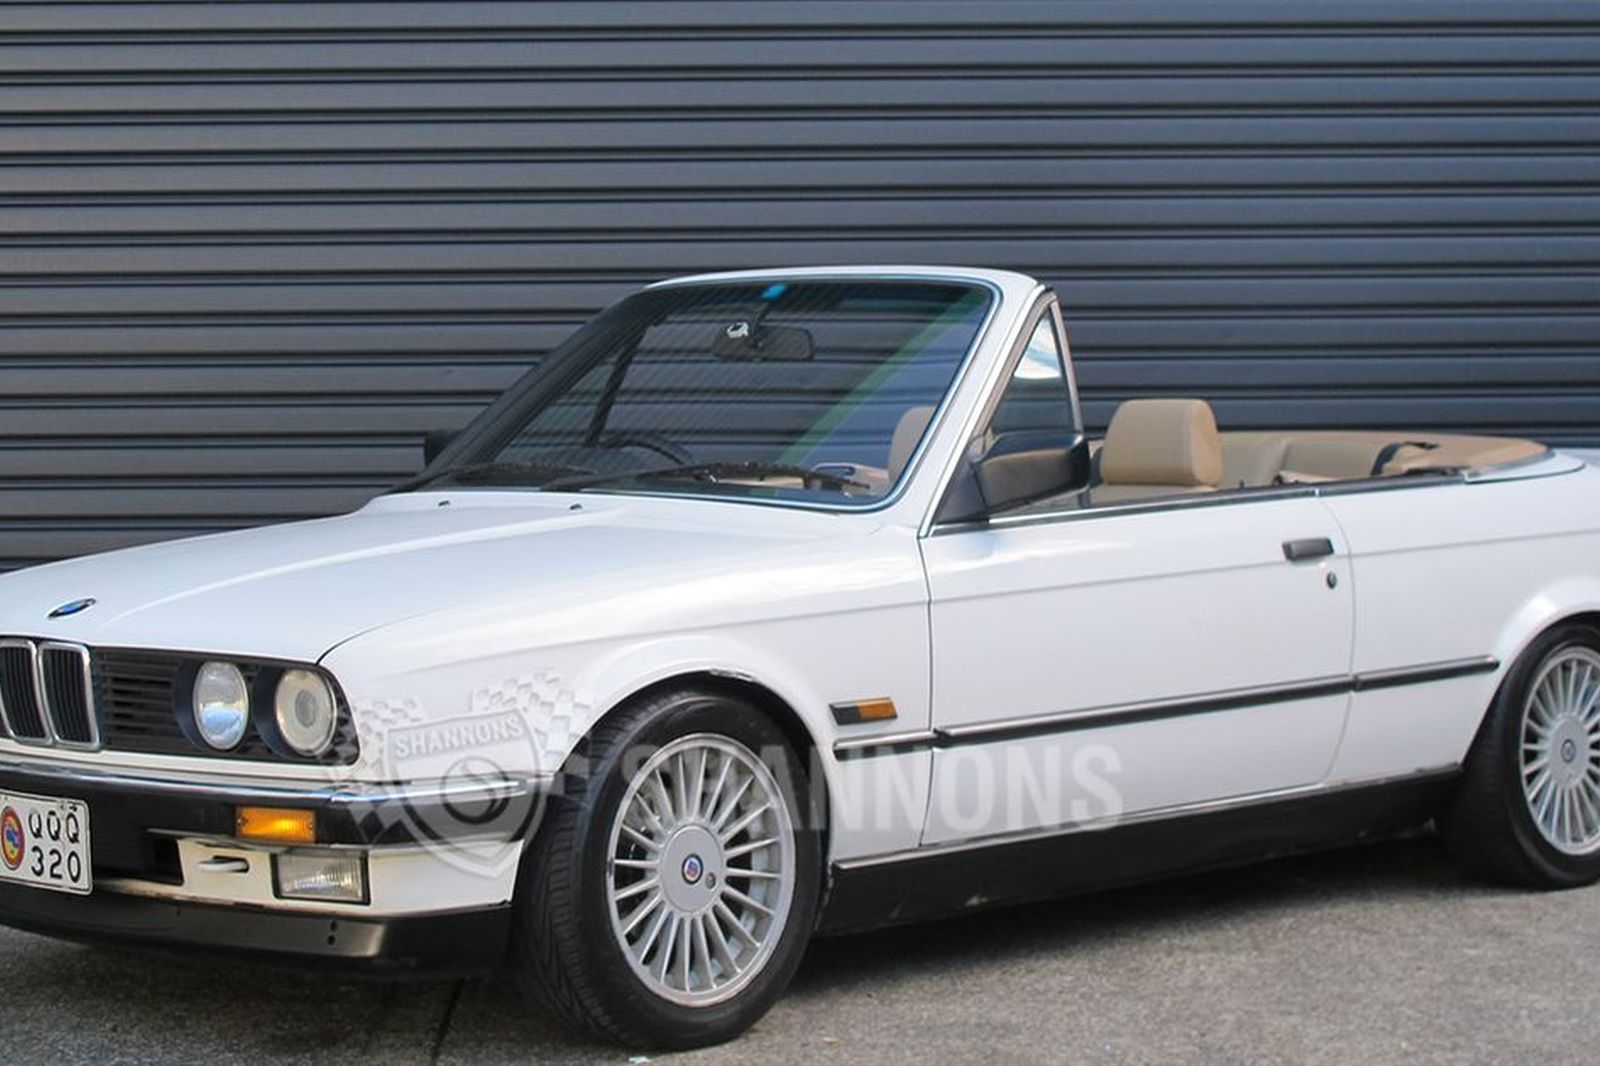 sold bmw 320i 39 alpina enhanced 39 convertible auctions lot 17 shannons. Black Bedroom Furniture Sets. Home Design Ideas